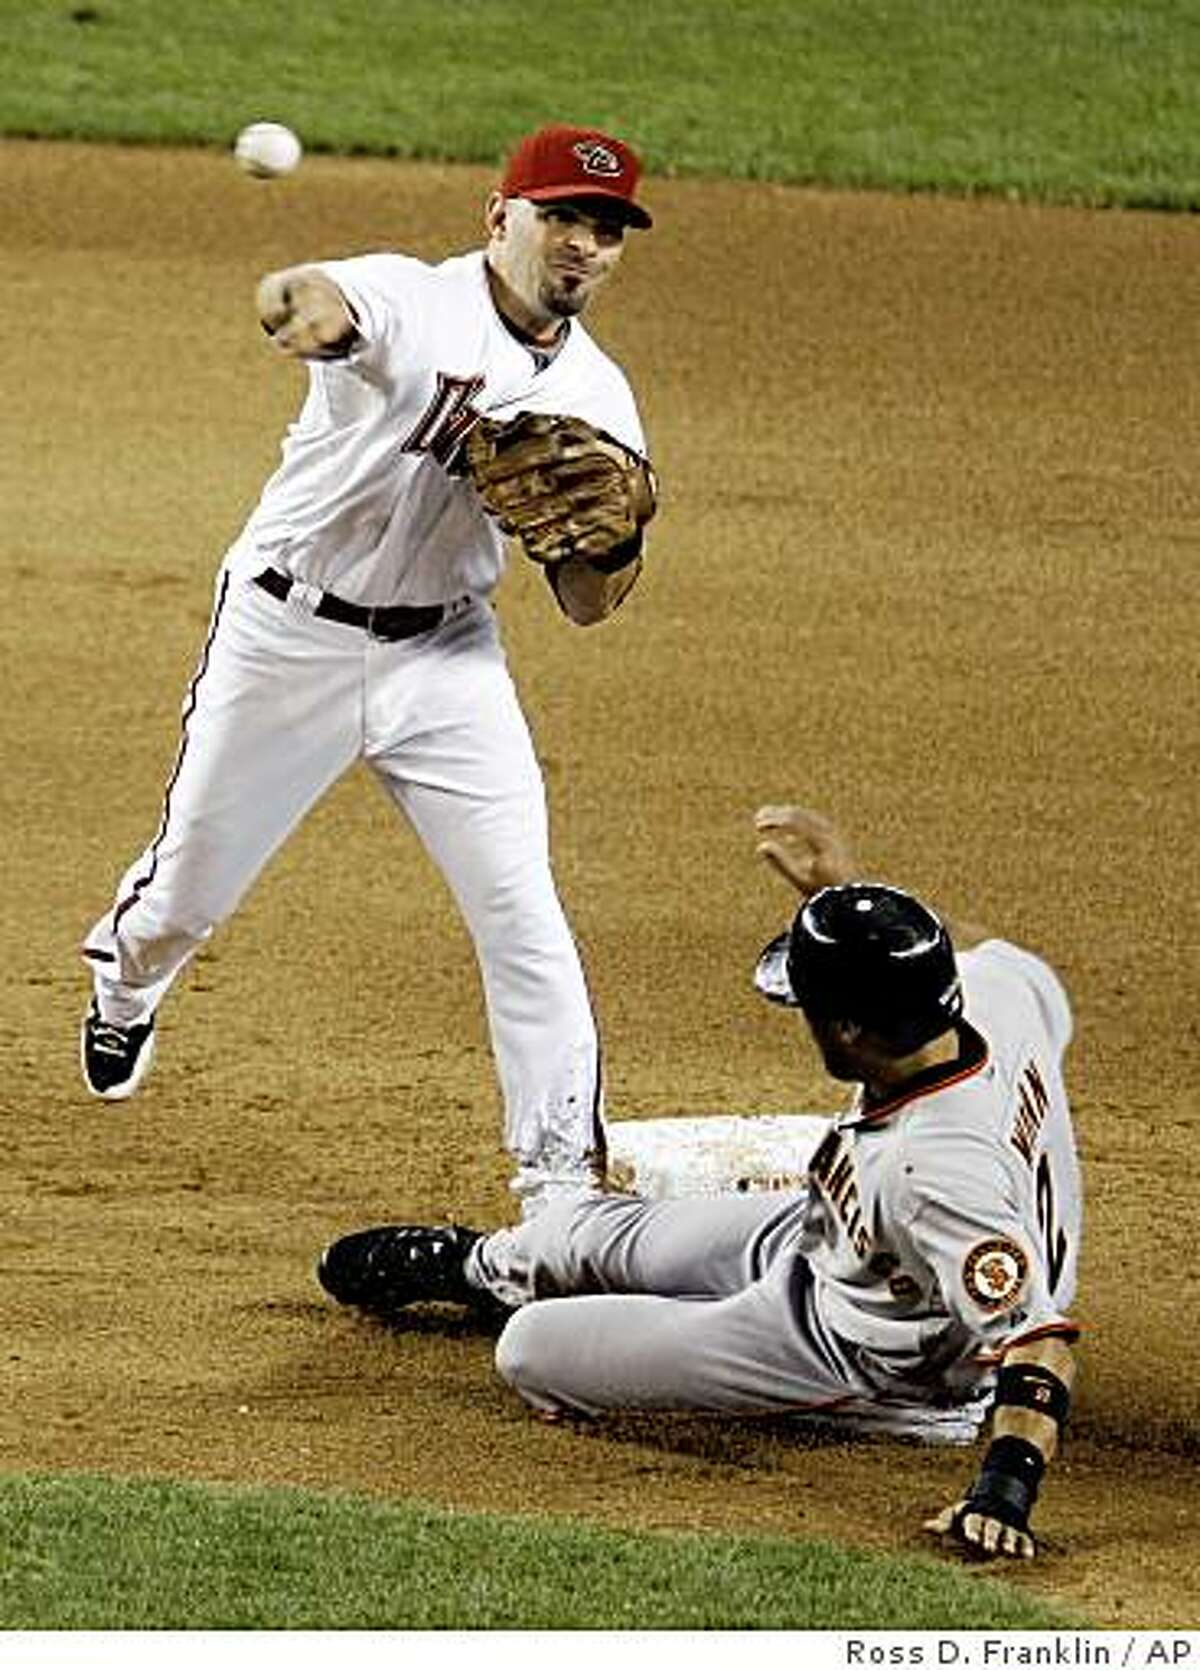 Arizona Diamondbacks' Augie Ojeda, top, throws to first after forcing out San Francisco Giants' Randy Winn in the eighth inning of a baseball game Thursday, June 11, 2009, in Phoenix. (AP Photo/Ross D. Franklin)